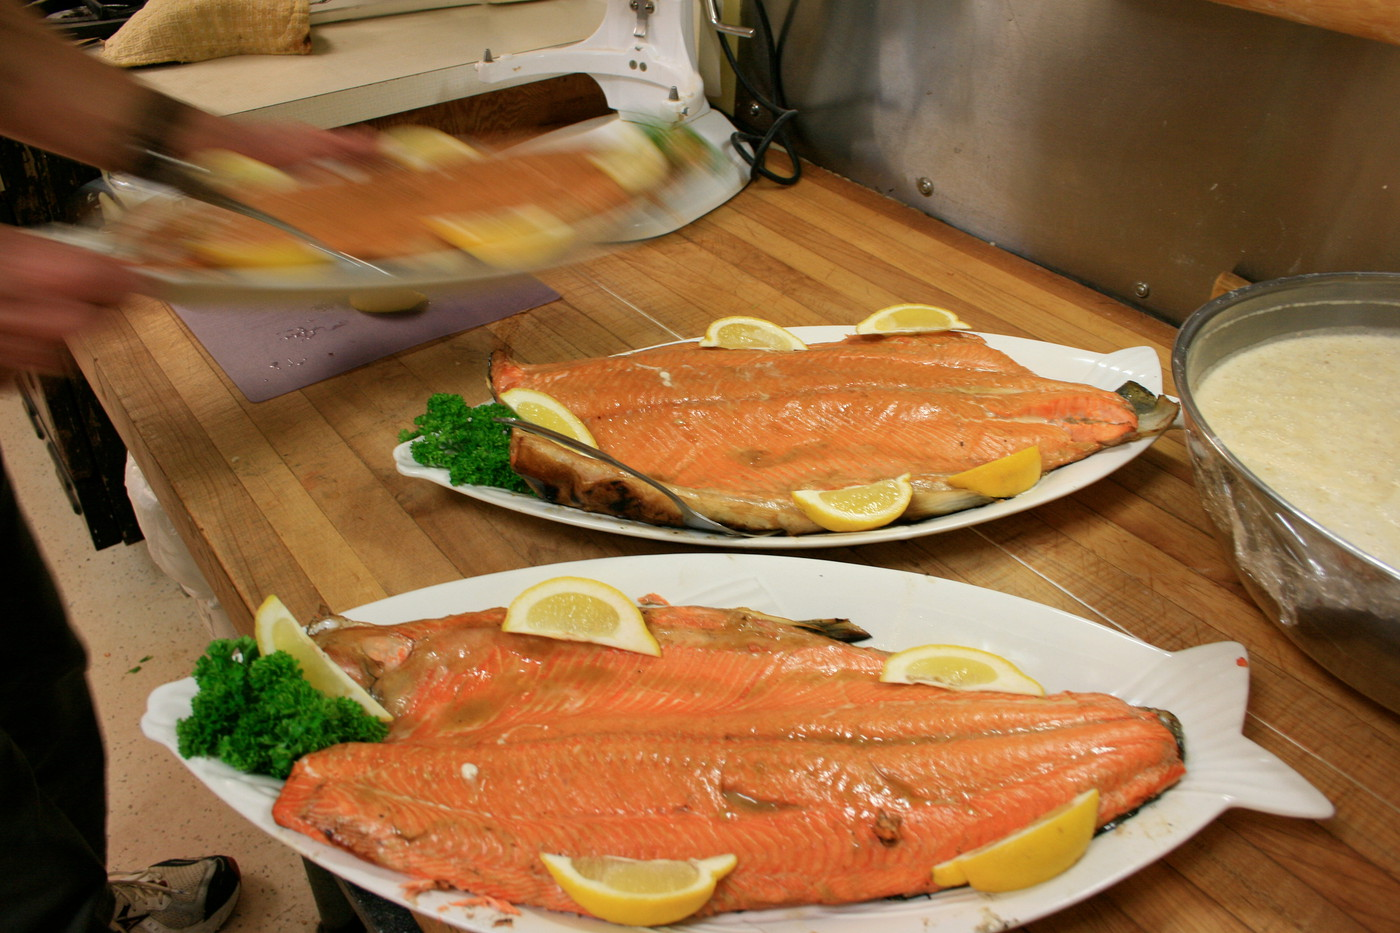 Coho salmon schooled up for serving